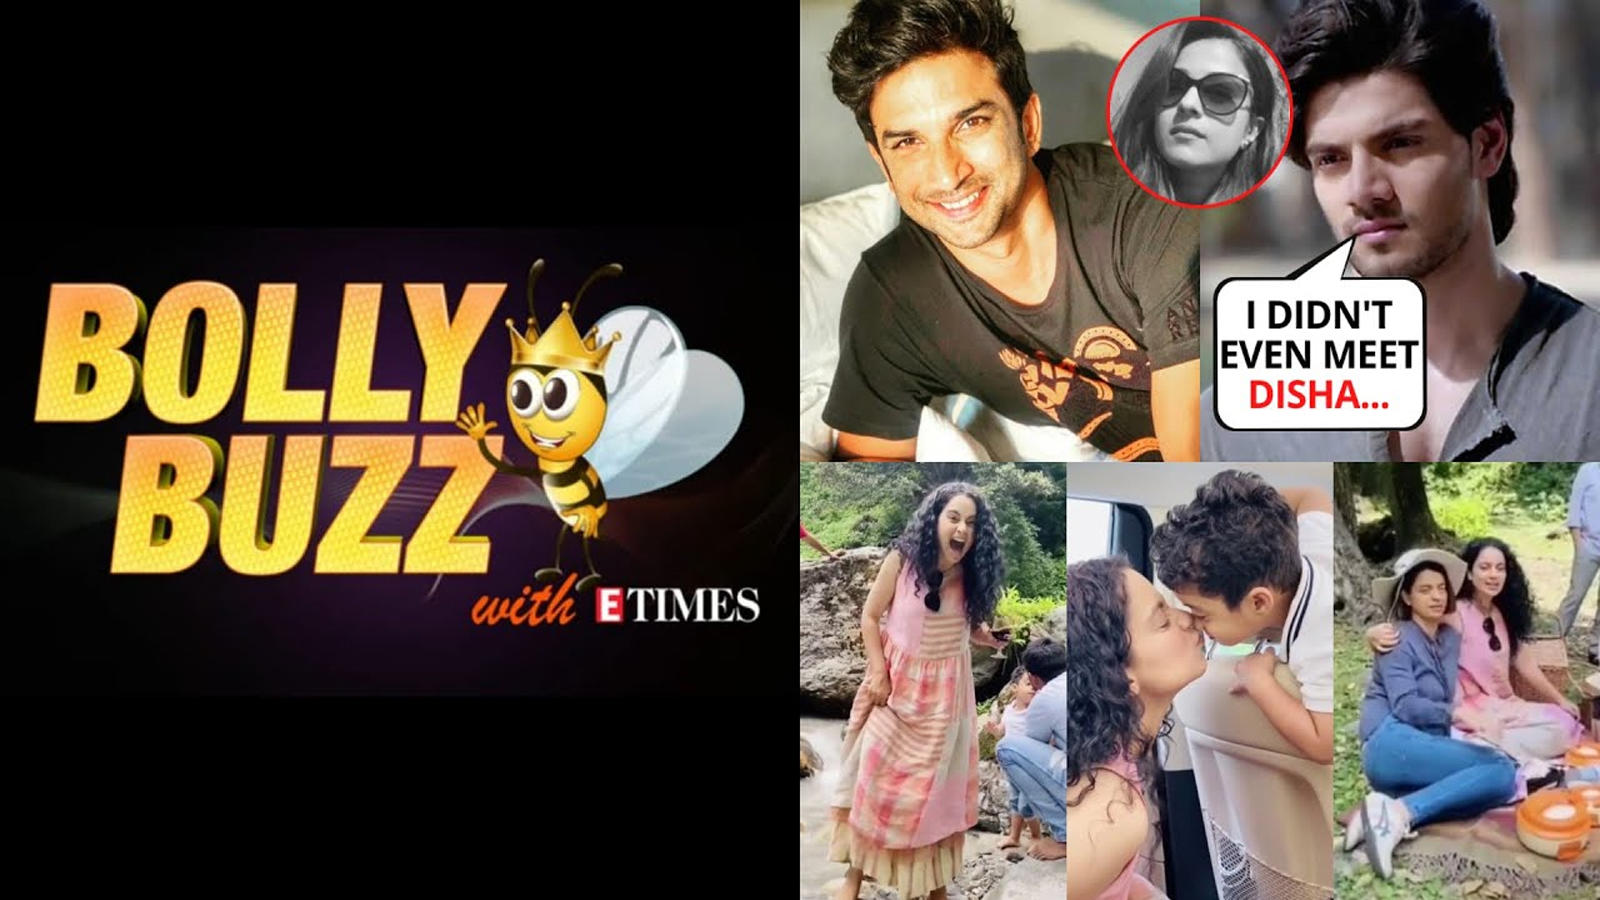 bolly-buzz-sooraj-pancholi-reacts-to-false-reports-about-disha-salian-kangana-arranges-picnic